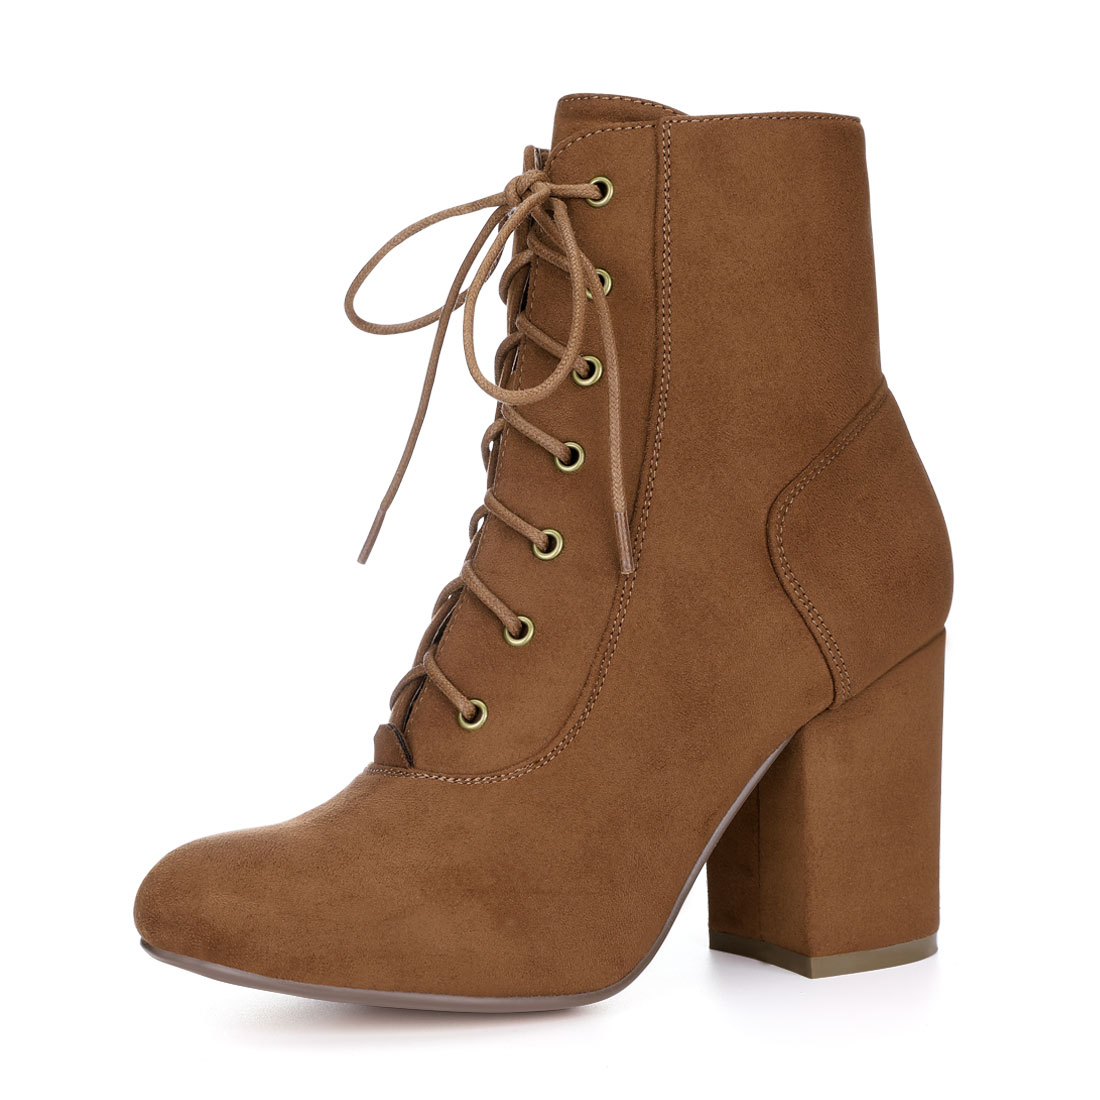 Allegra K Women Round Toe Chunky High Heel Lace Up Booties Brown US 9